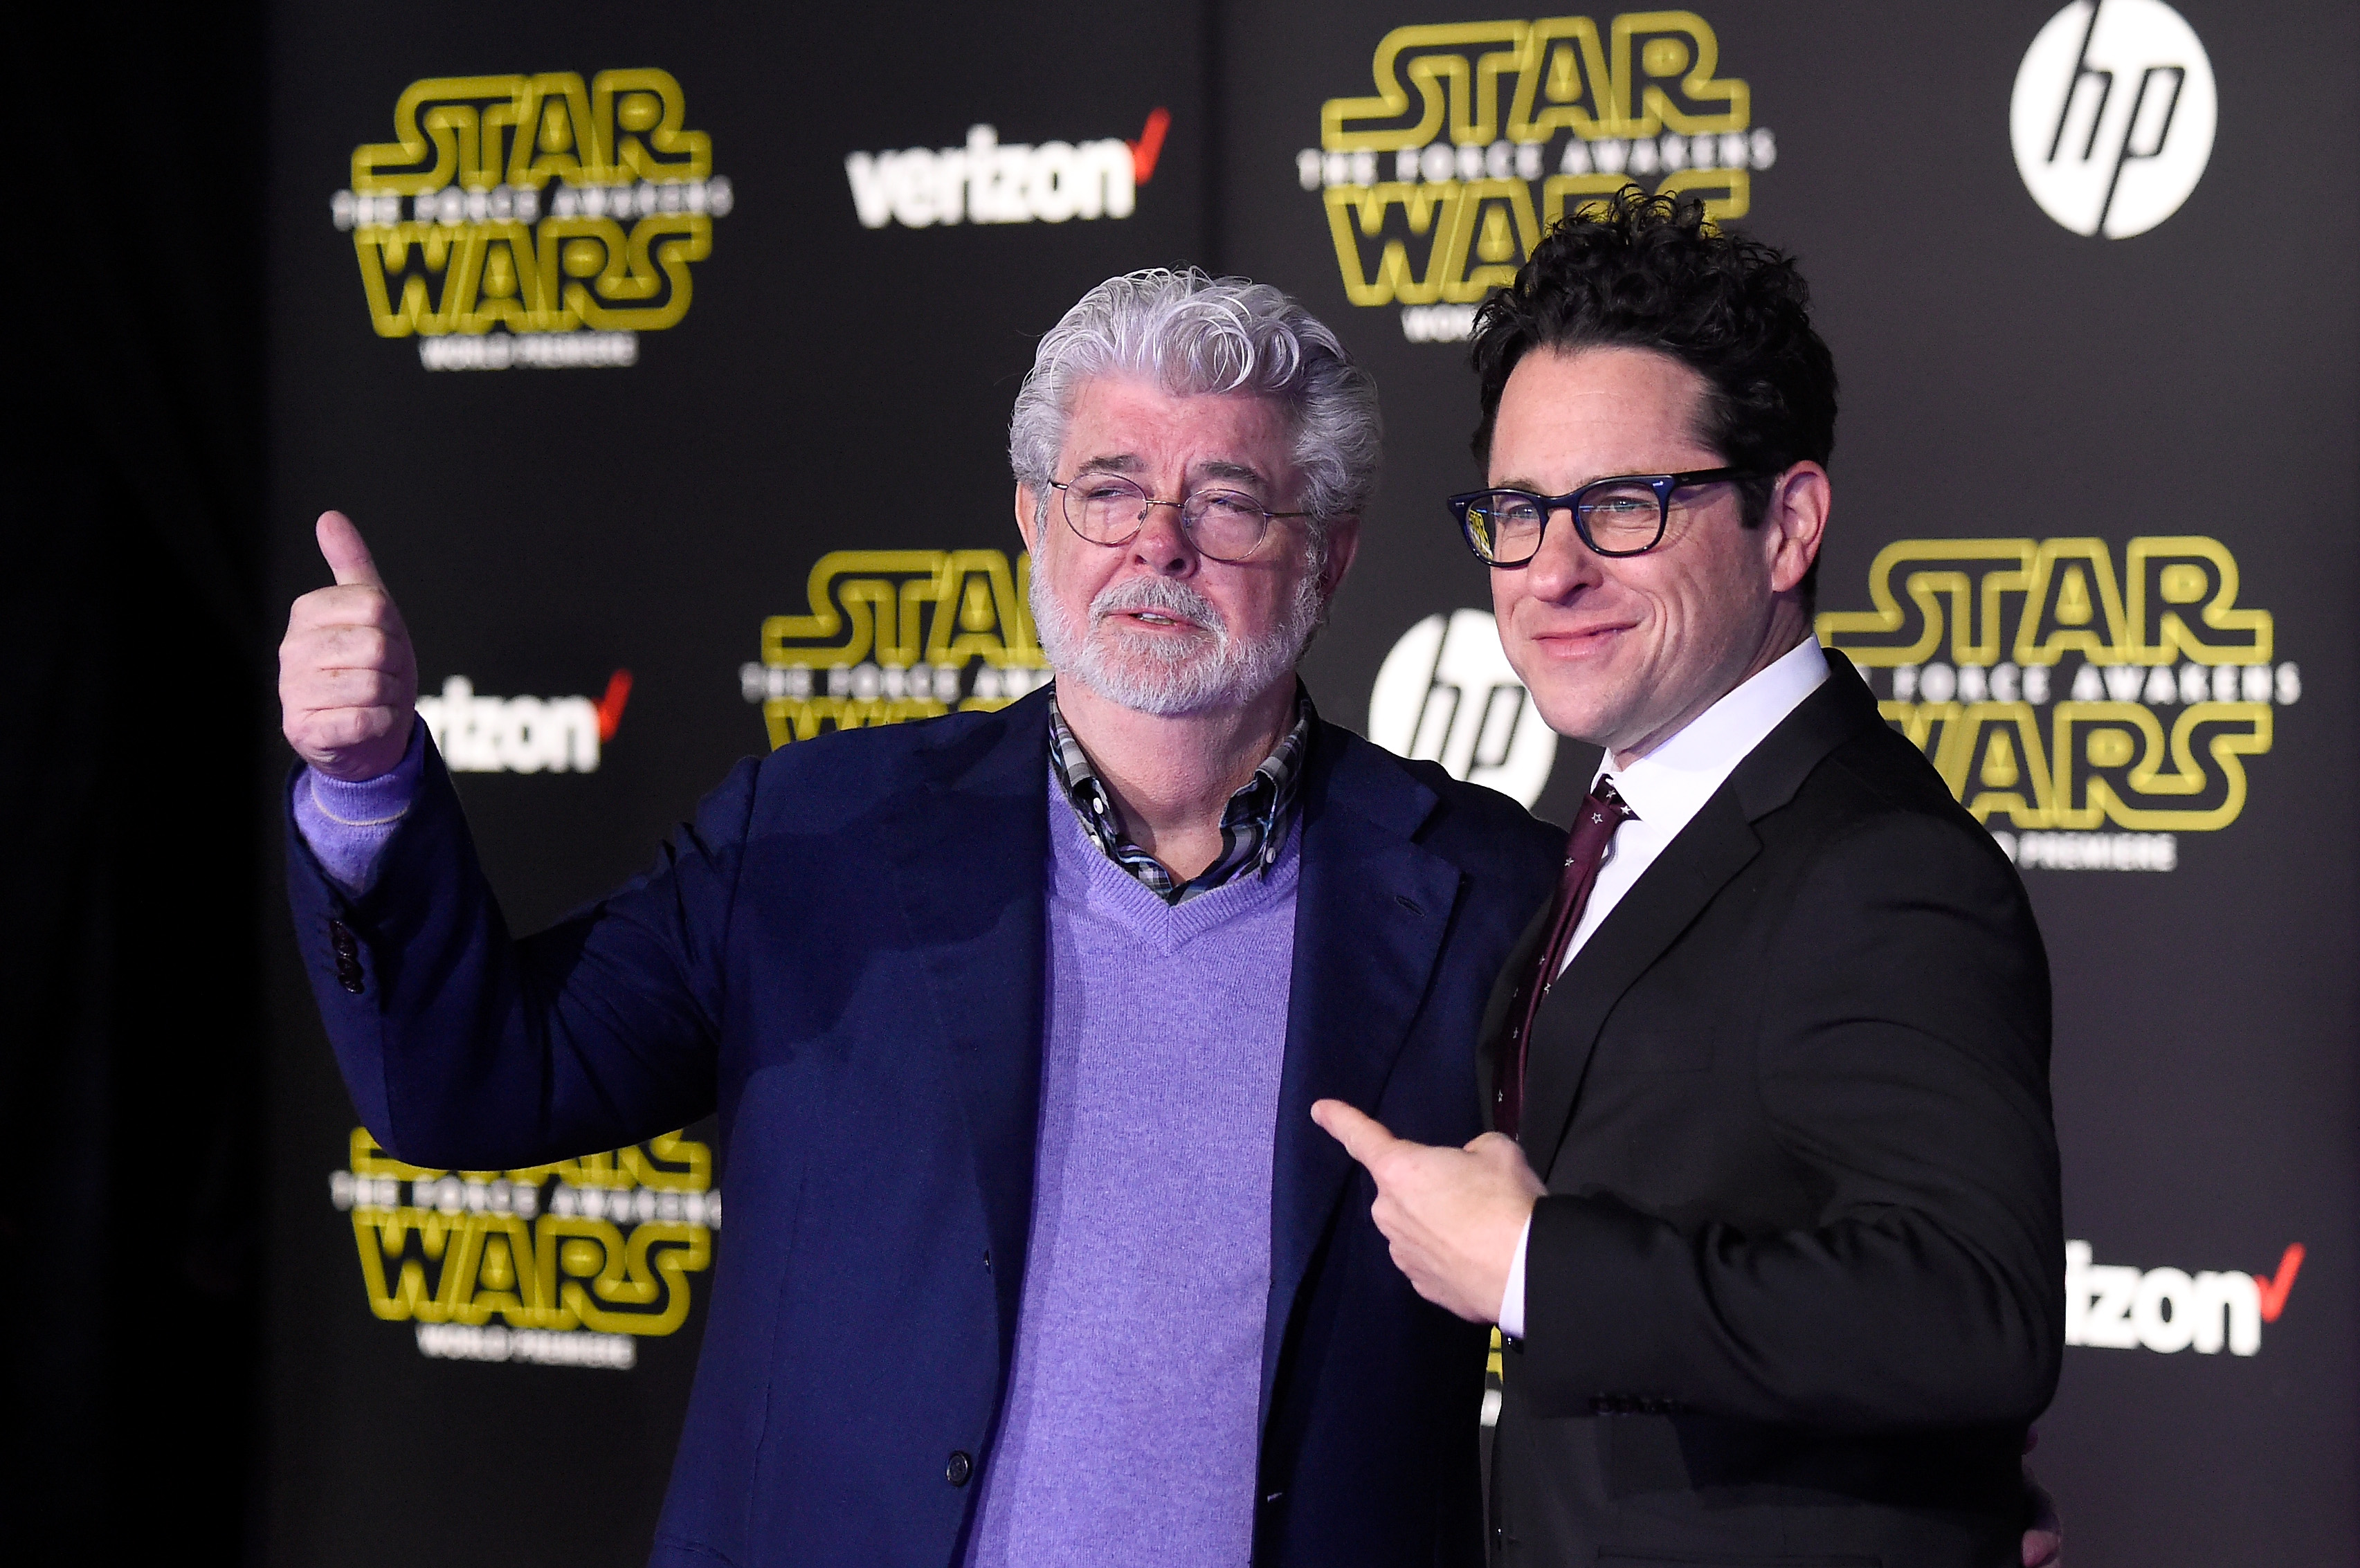 George lucas gives a thumbs up while JJ Abrams points at him at the Force Awakens premiere in 2015